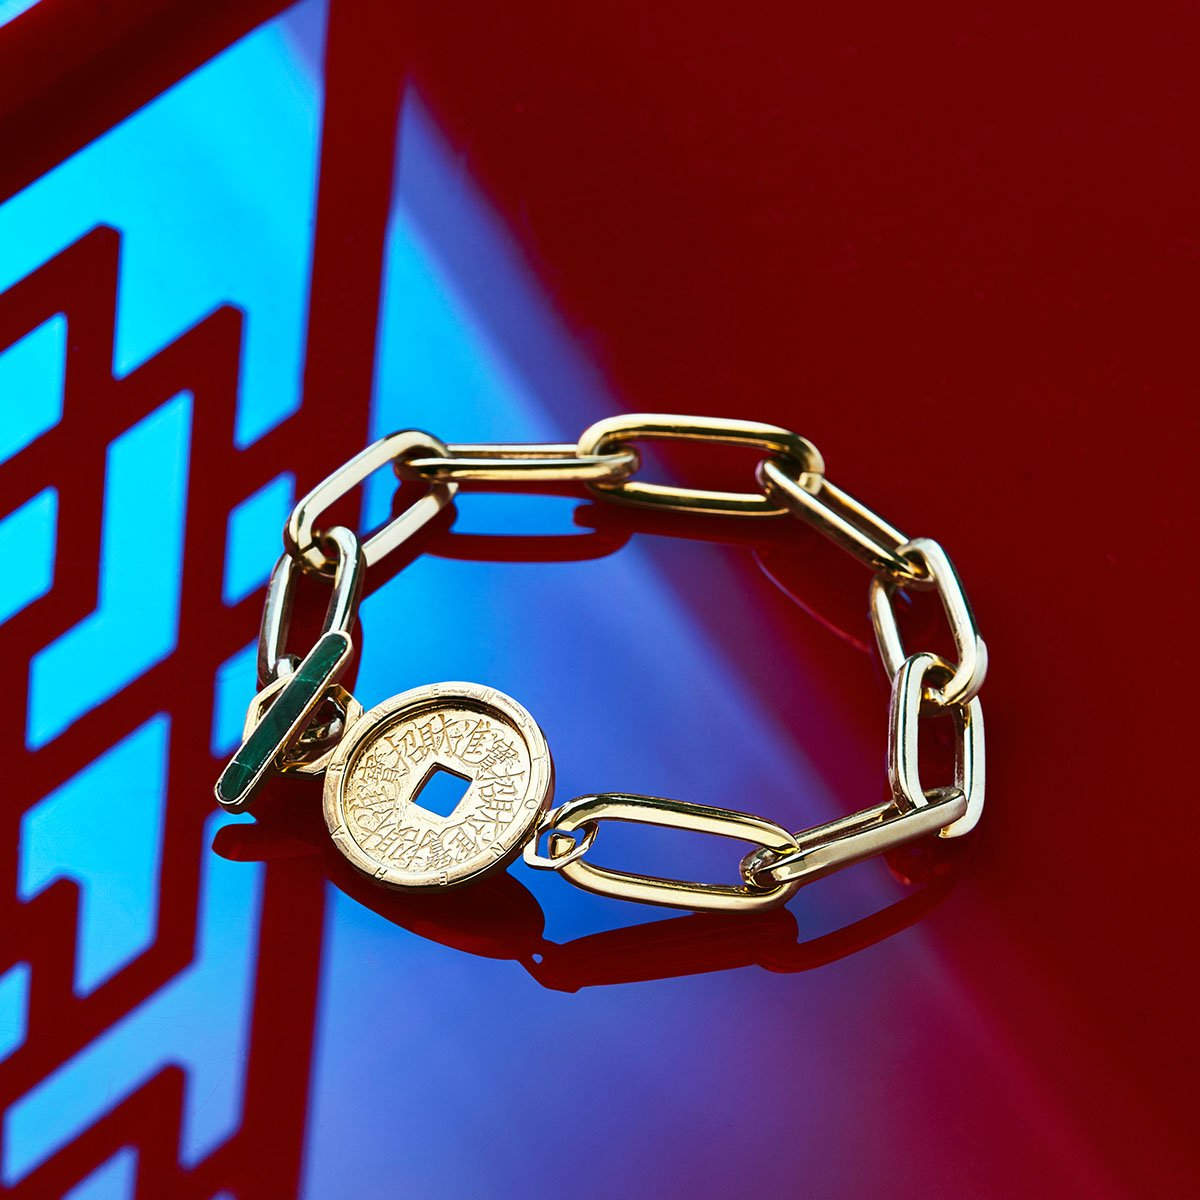 The Fortune Coin Bracelet